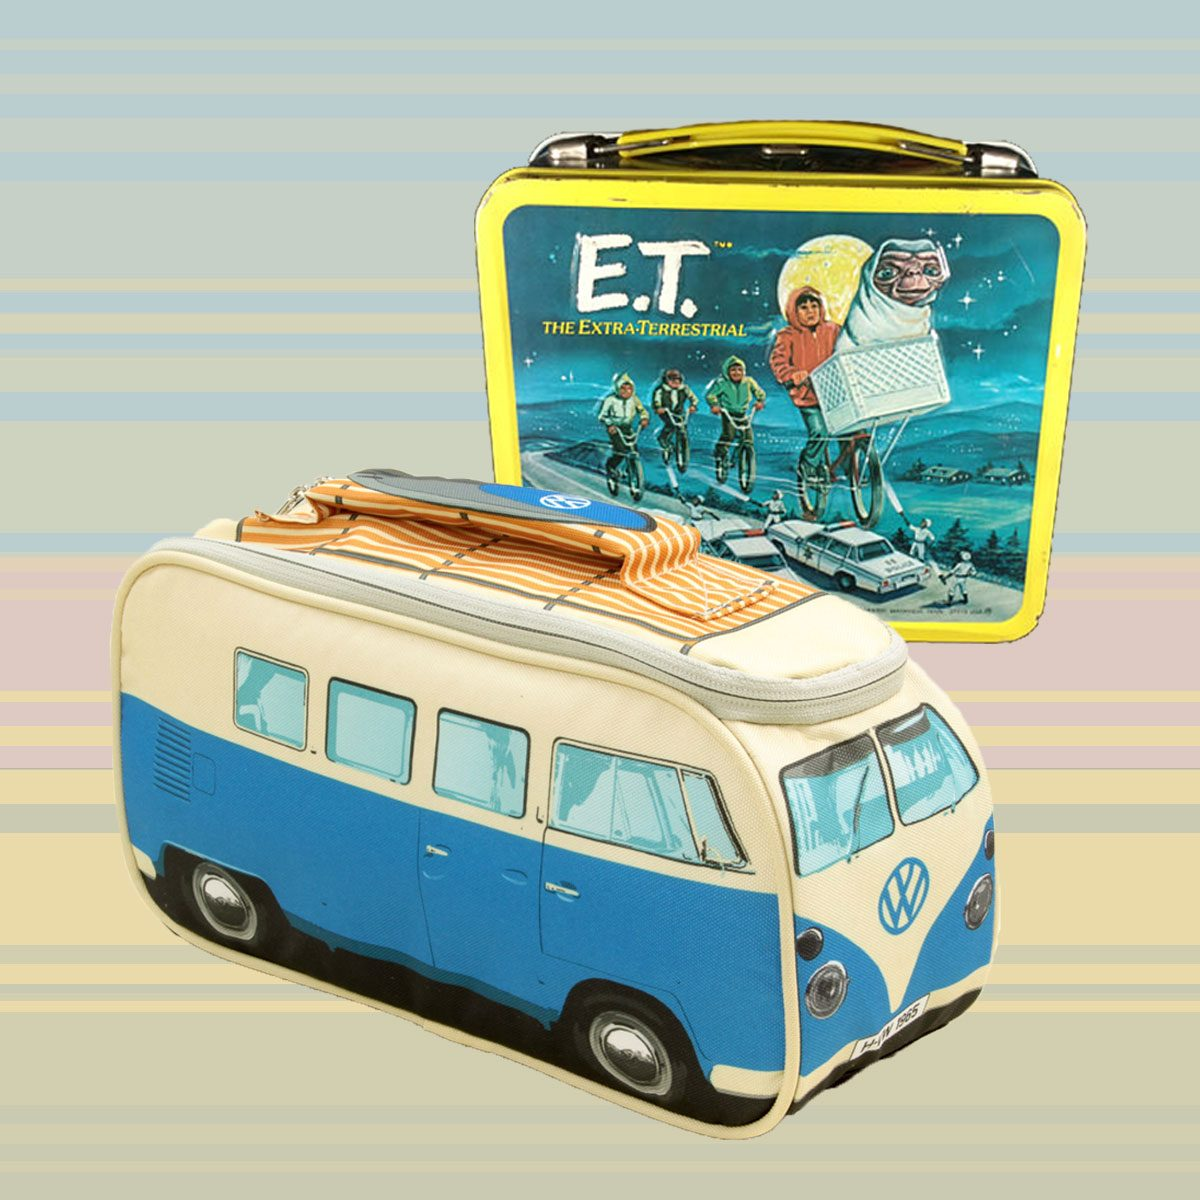 7 Old-School Lunch Boxes That'll Take You Back